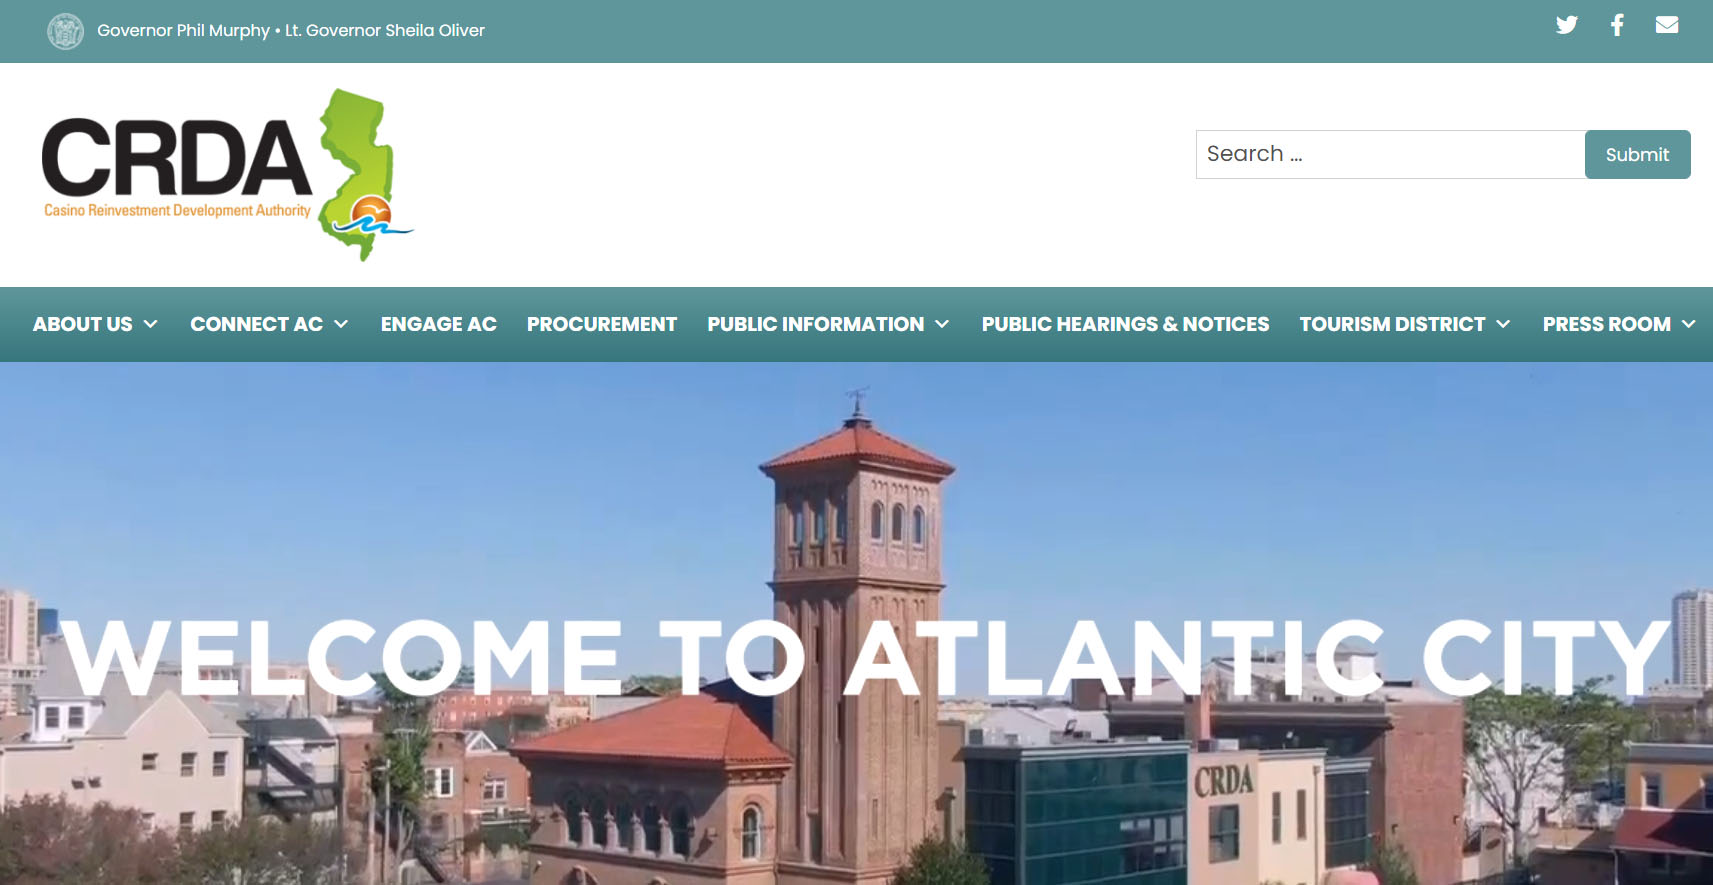 """CRDA website homepage """"Welcome to Atlantic City"""" with CRDA Firehouse building in view."""